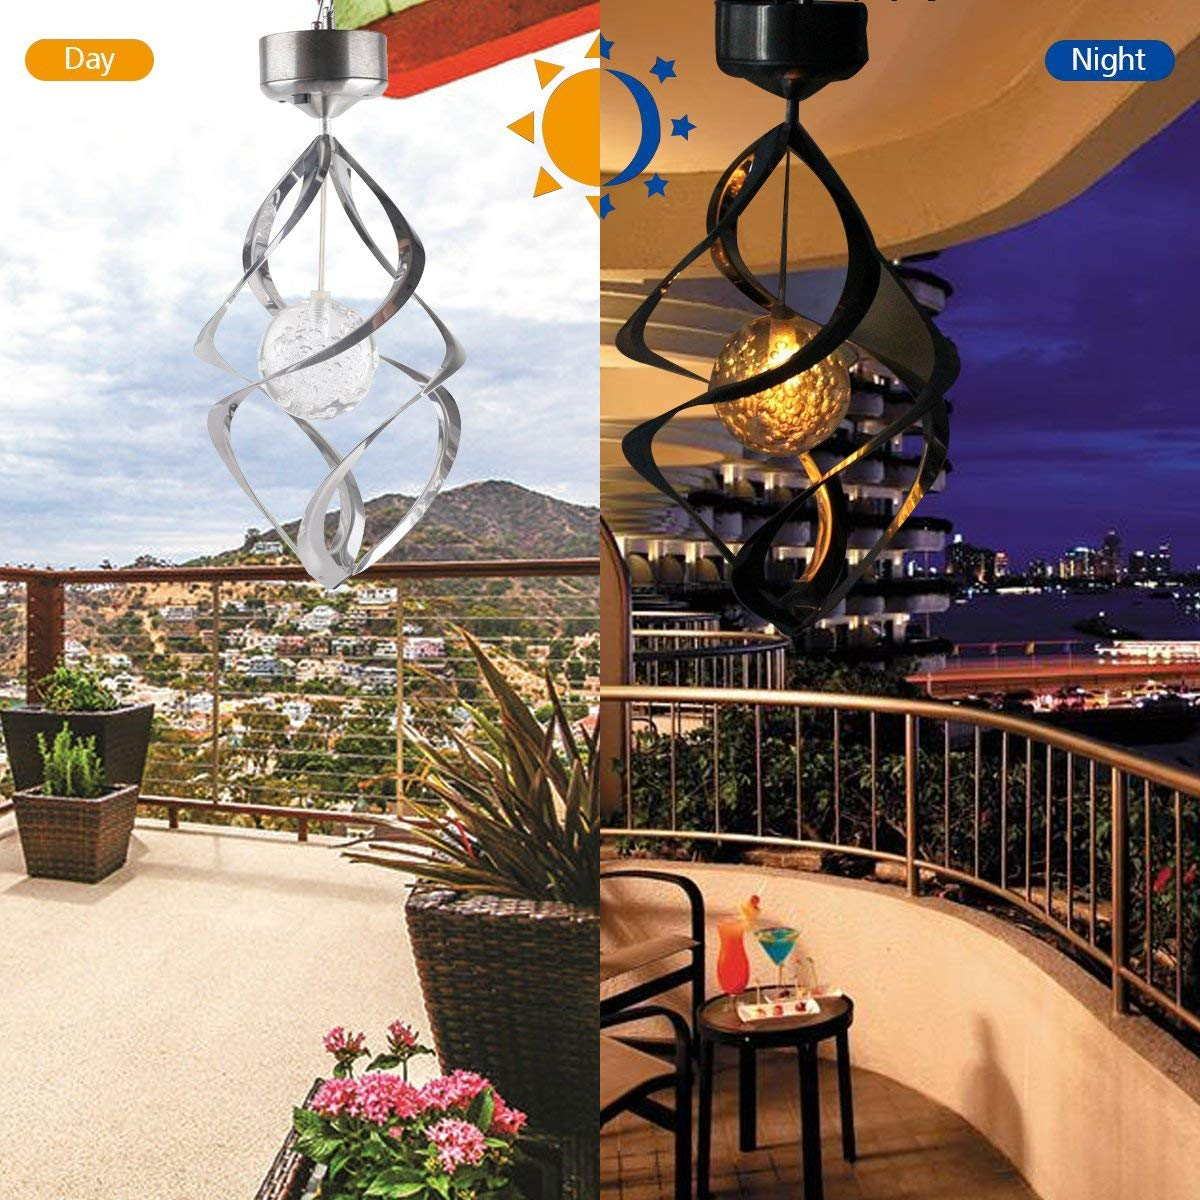 🔥LAST DAY PROMOTION-50%OFF🔥LED COLOR CHANGING SOLAR WIND CHIME LIGHT